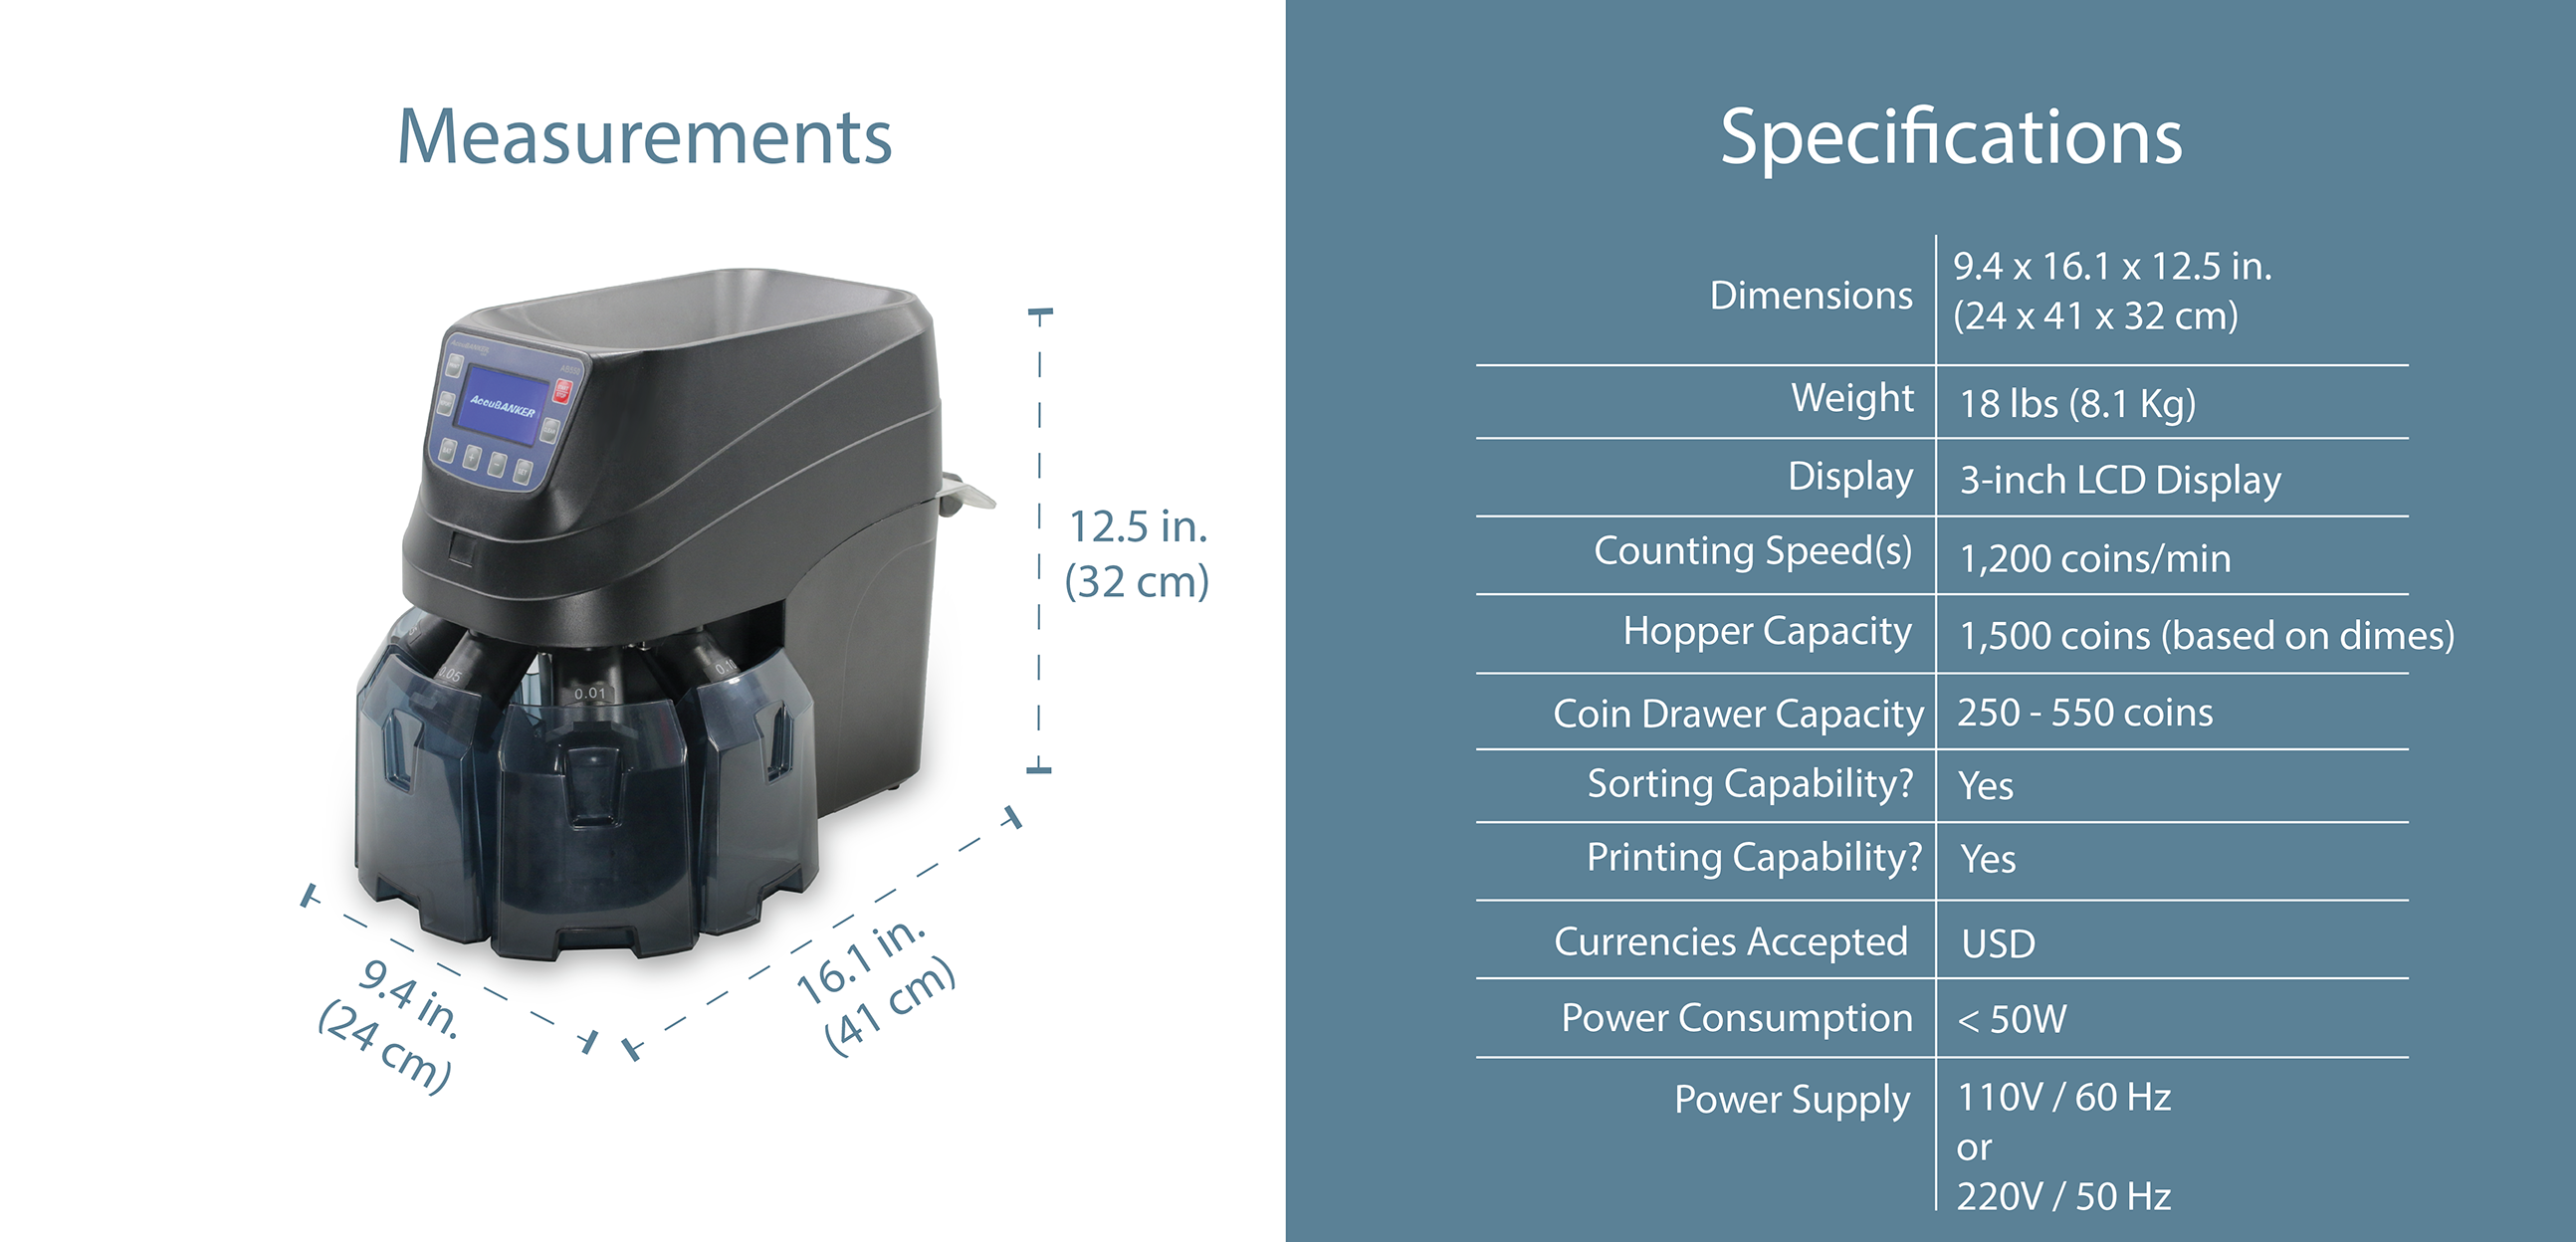 AB550 High Speed Coin Counter & Sorter Features & Specifications